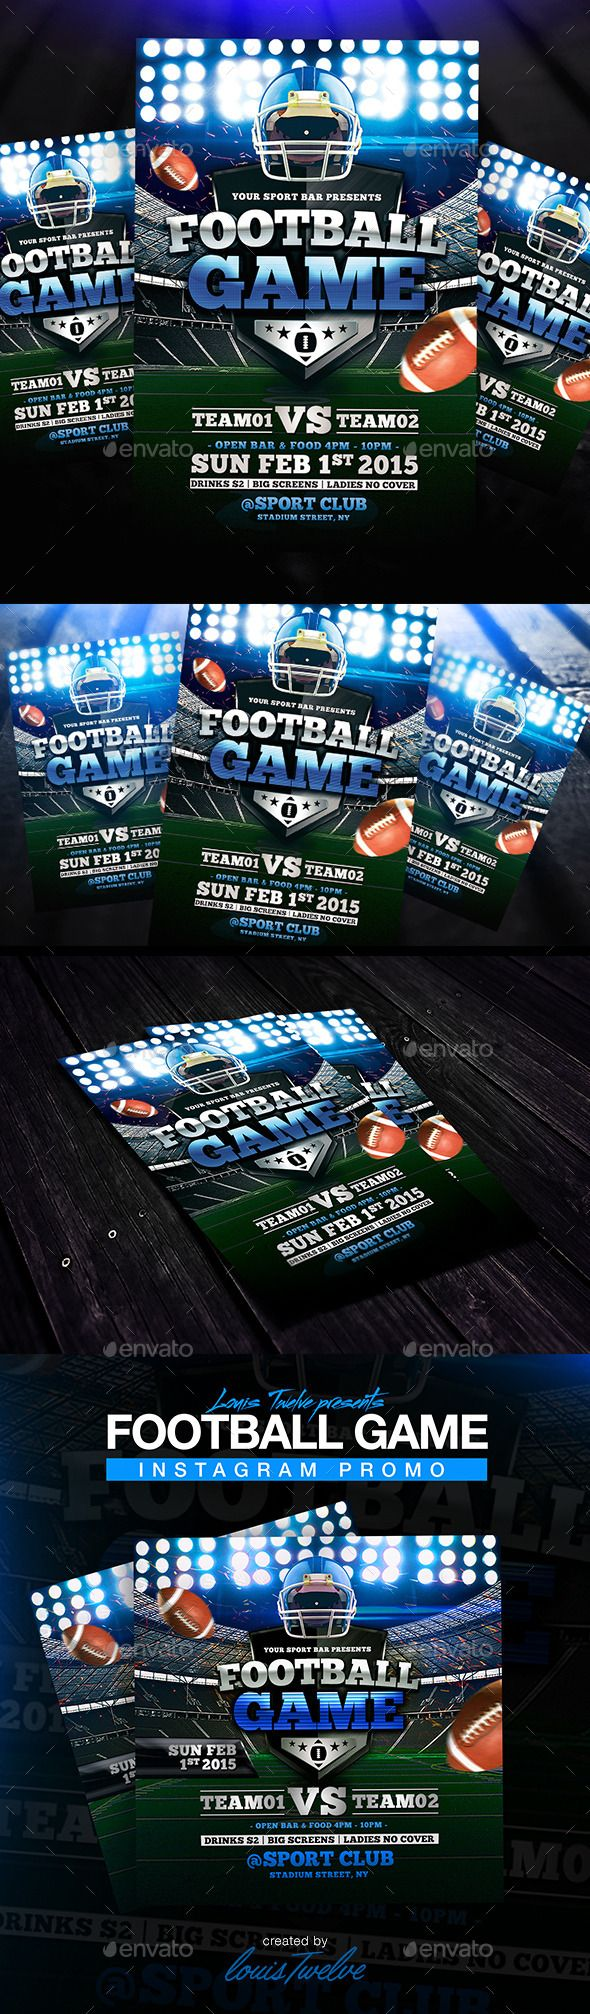 best images about flyers template saturday night football game flyer instagram promo